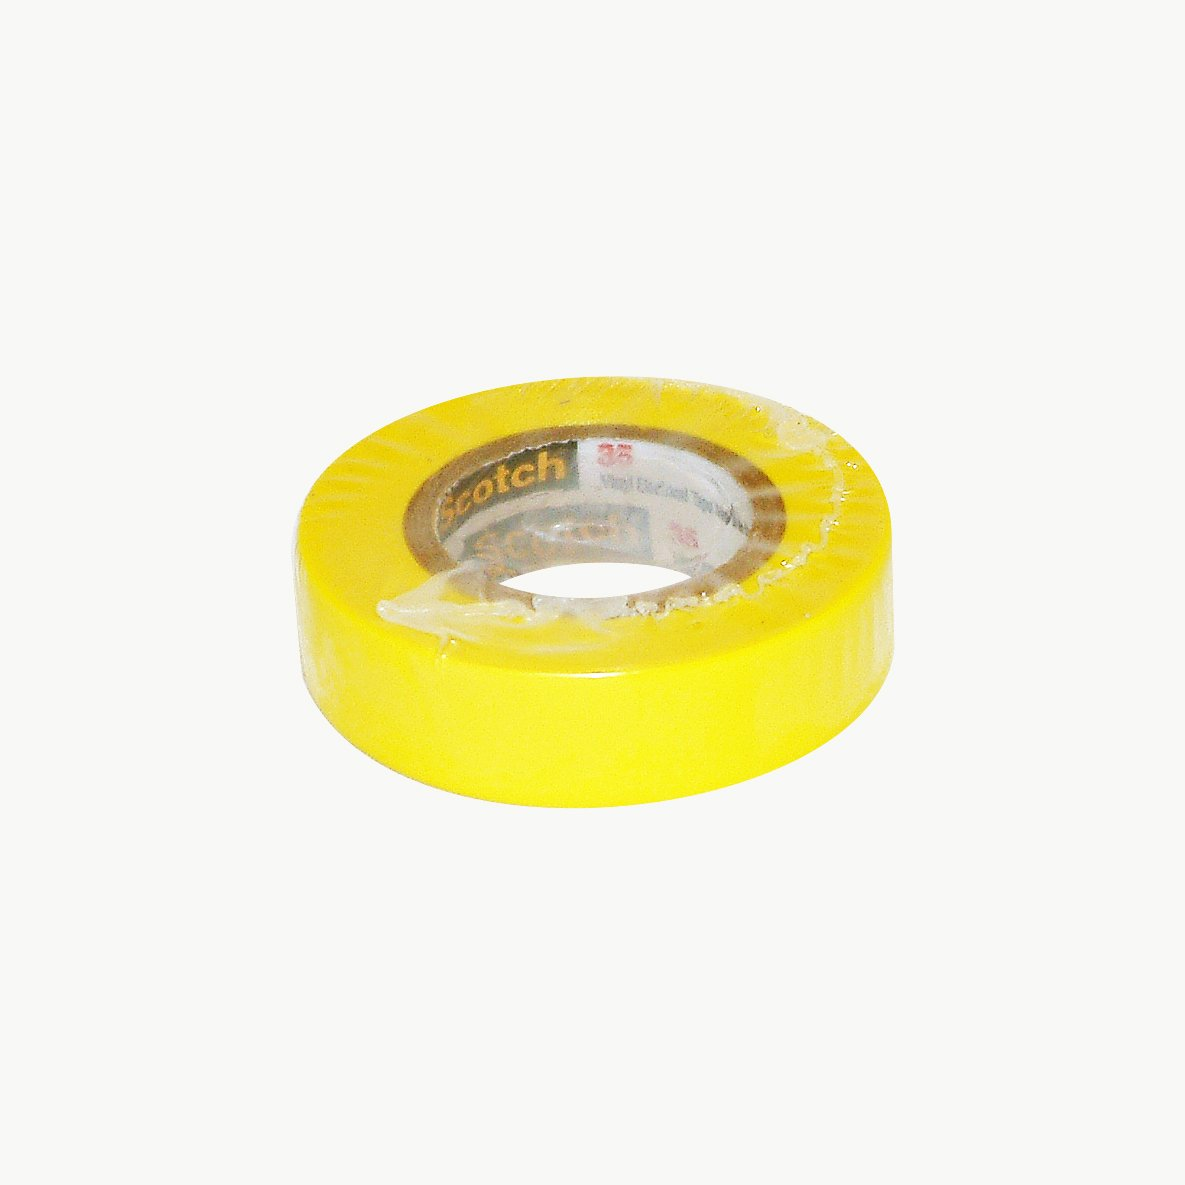 0 to 221 Degree F 1250V//mil Dielectric Strength 3M Scotch 35 Polyvinyl Chloride Color Coding Electrical Tape 20 Length x 1//2 Width Yellow 20/' Length x 1//2 Width 10257